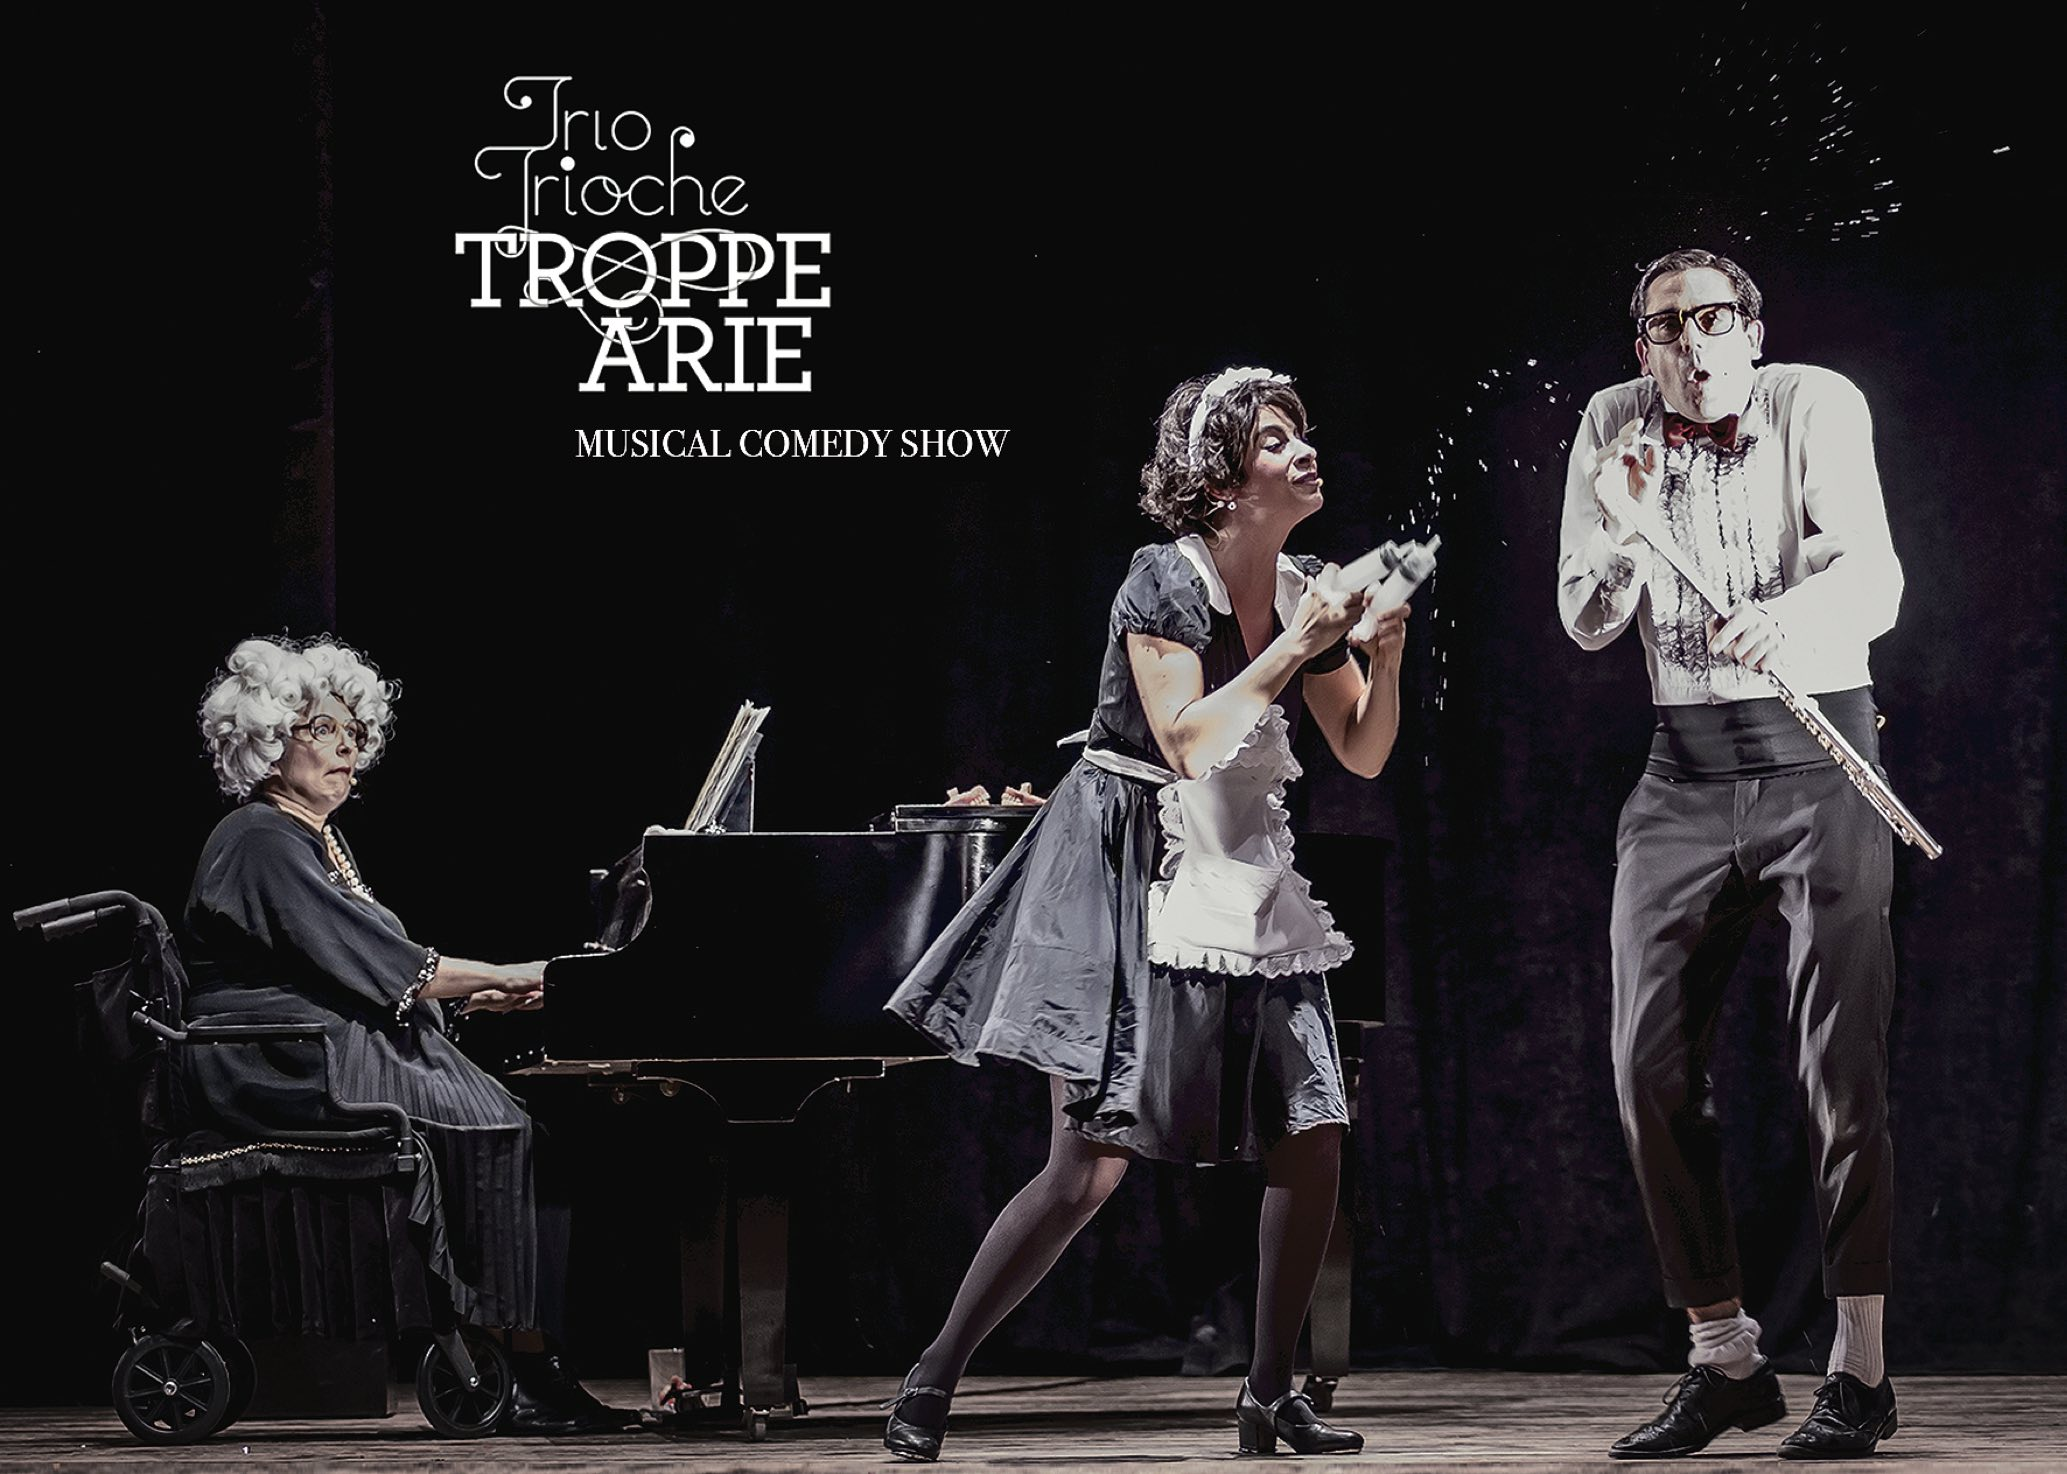 Troppe Arie